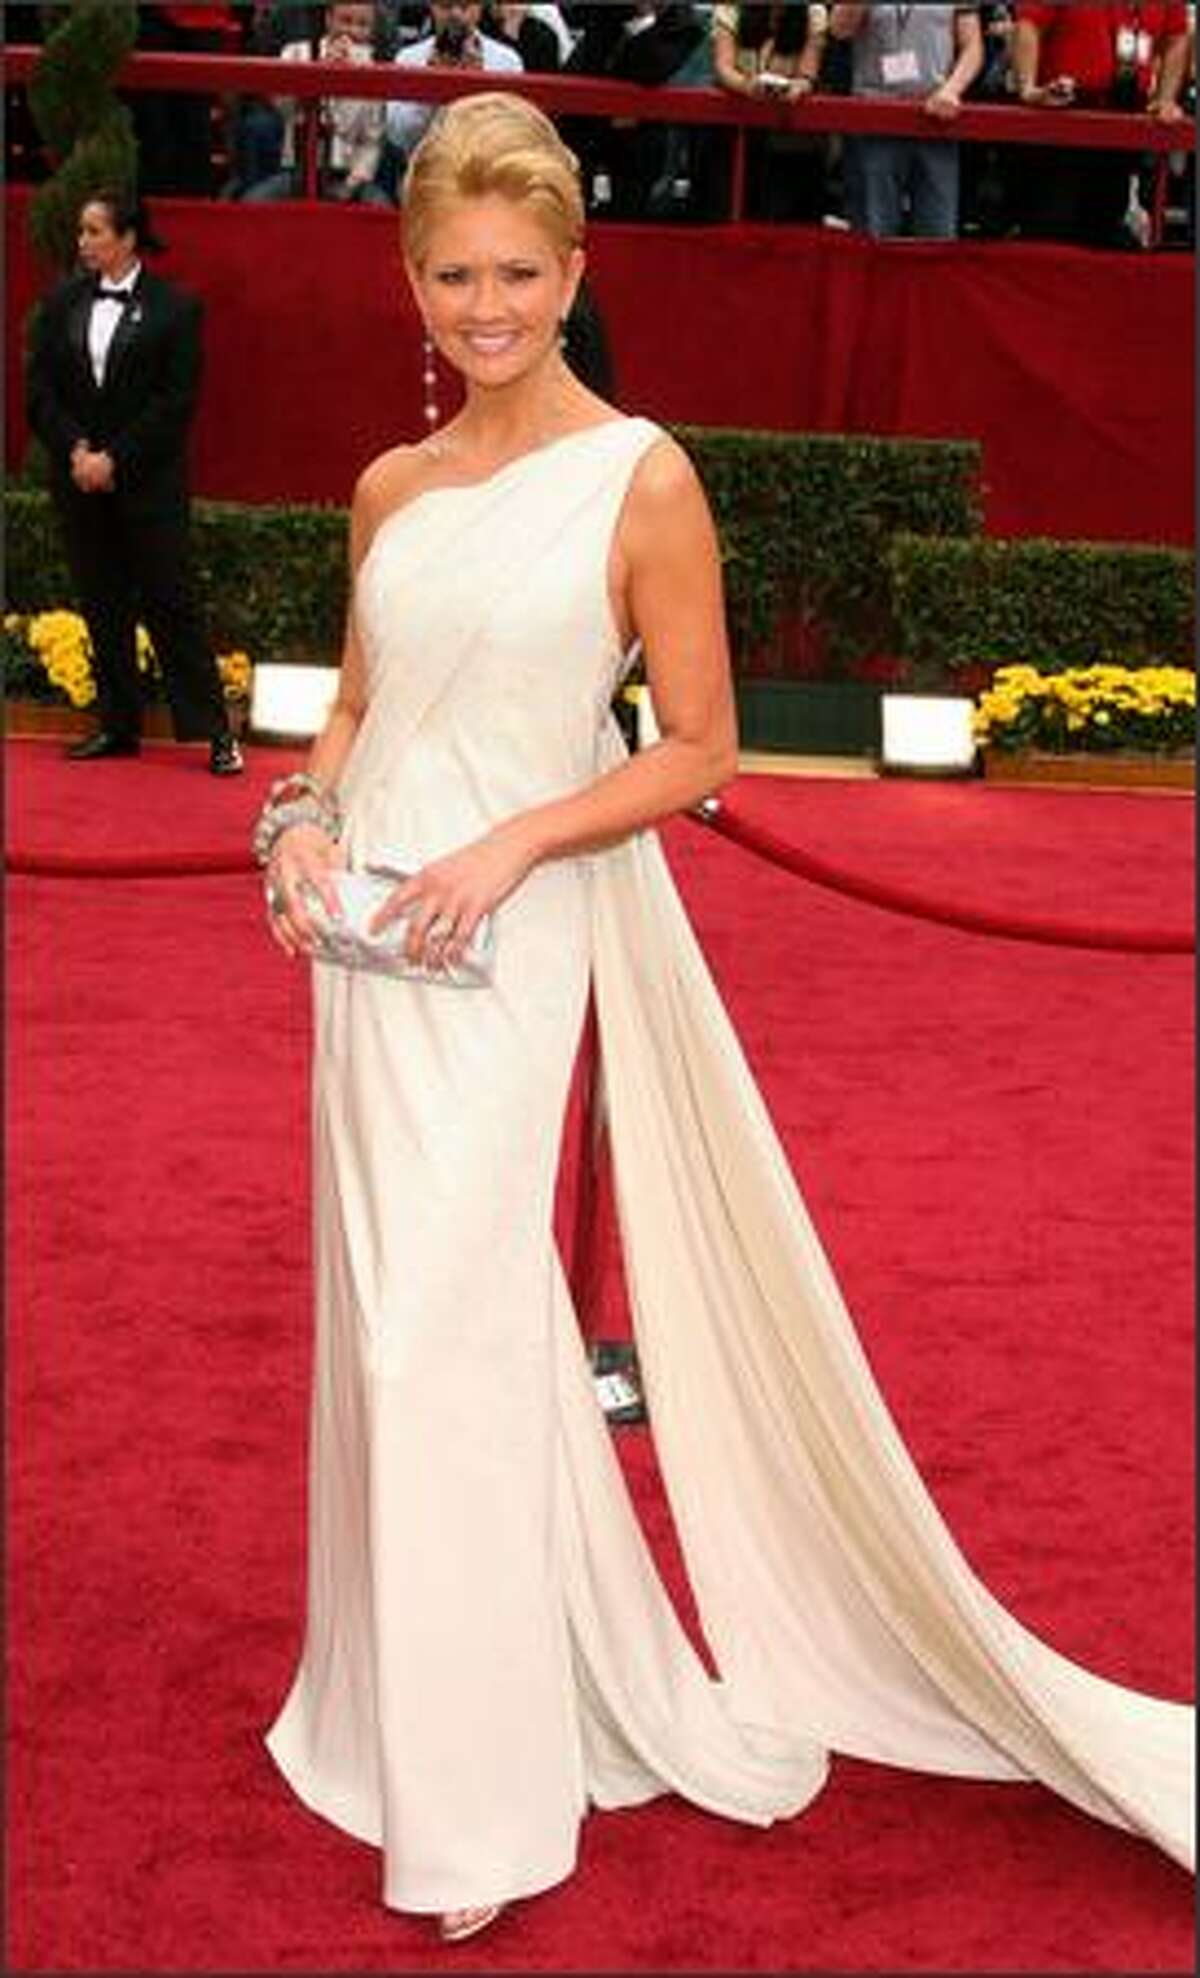 TV personality Nancy O'Dell arrives at the 81st Annual Academy Awards held at Kodak Theatre in Los Angeles, California.